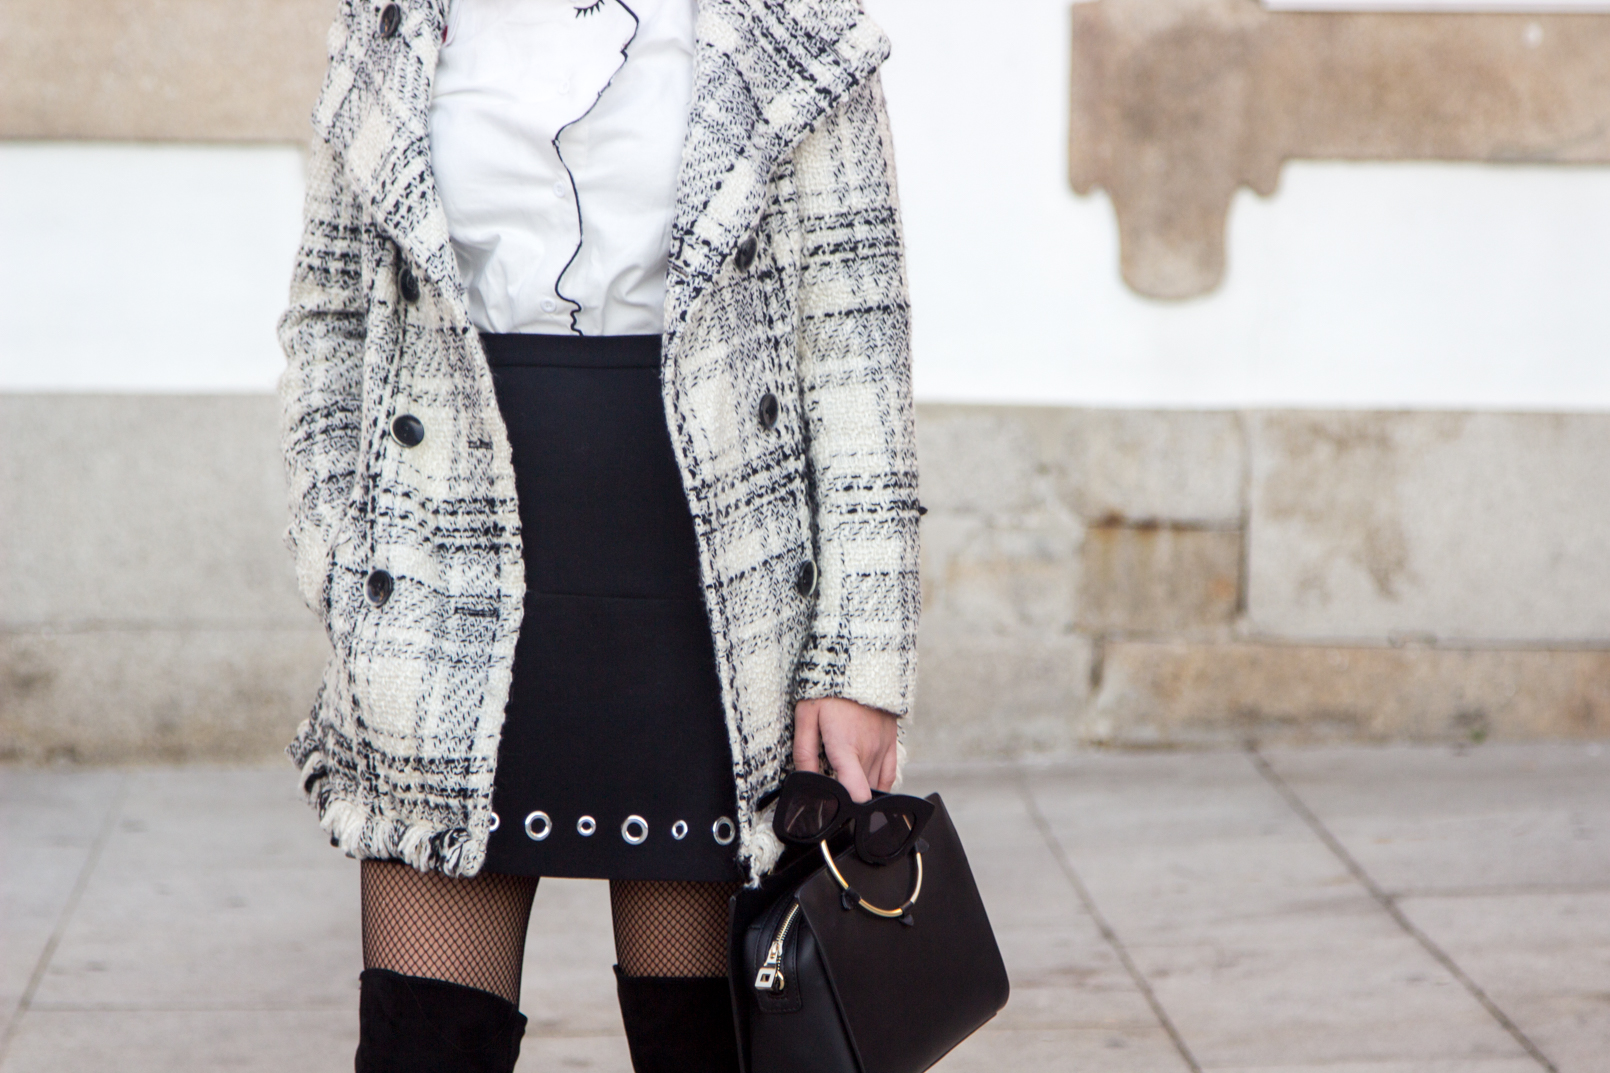 Le Fashionaire How to make fishnet tights look stylish tartan coat outerwear zara white shein shirt face neck red nails details eyelet black michael kors mini skirt calzedonia black fishnets 3945 EN